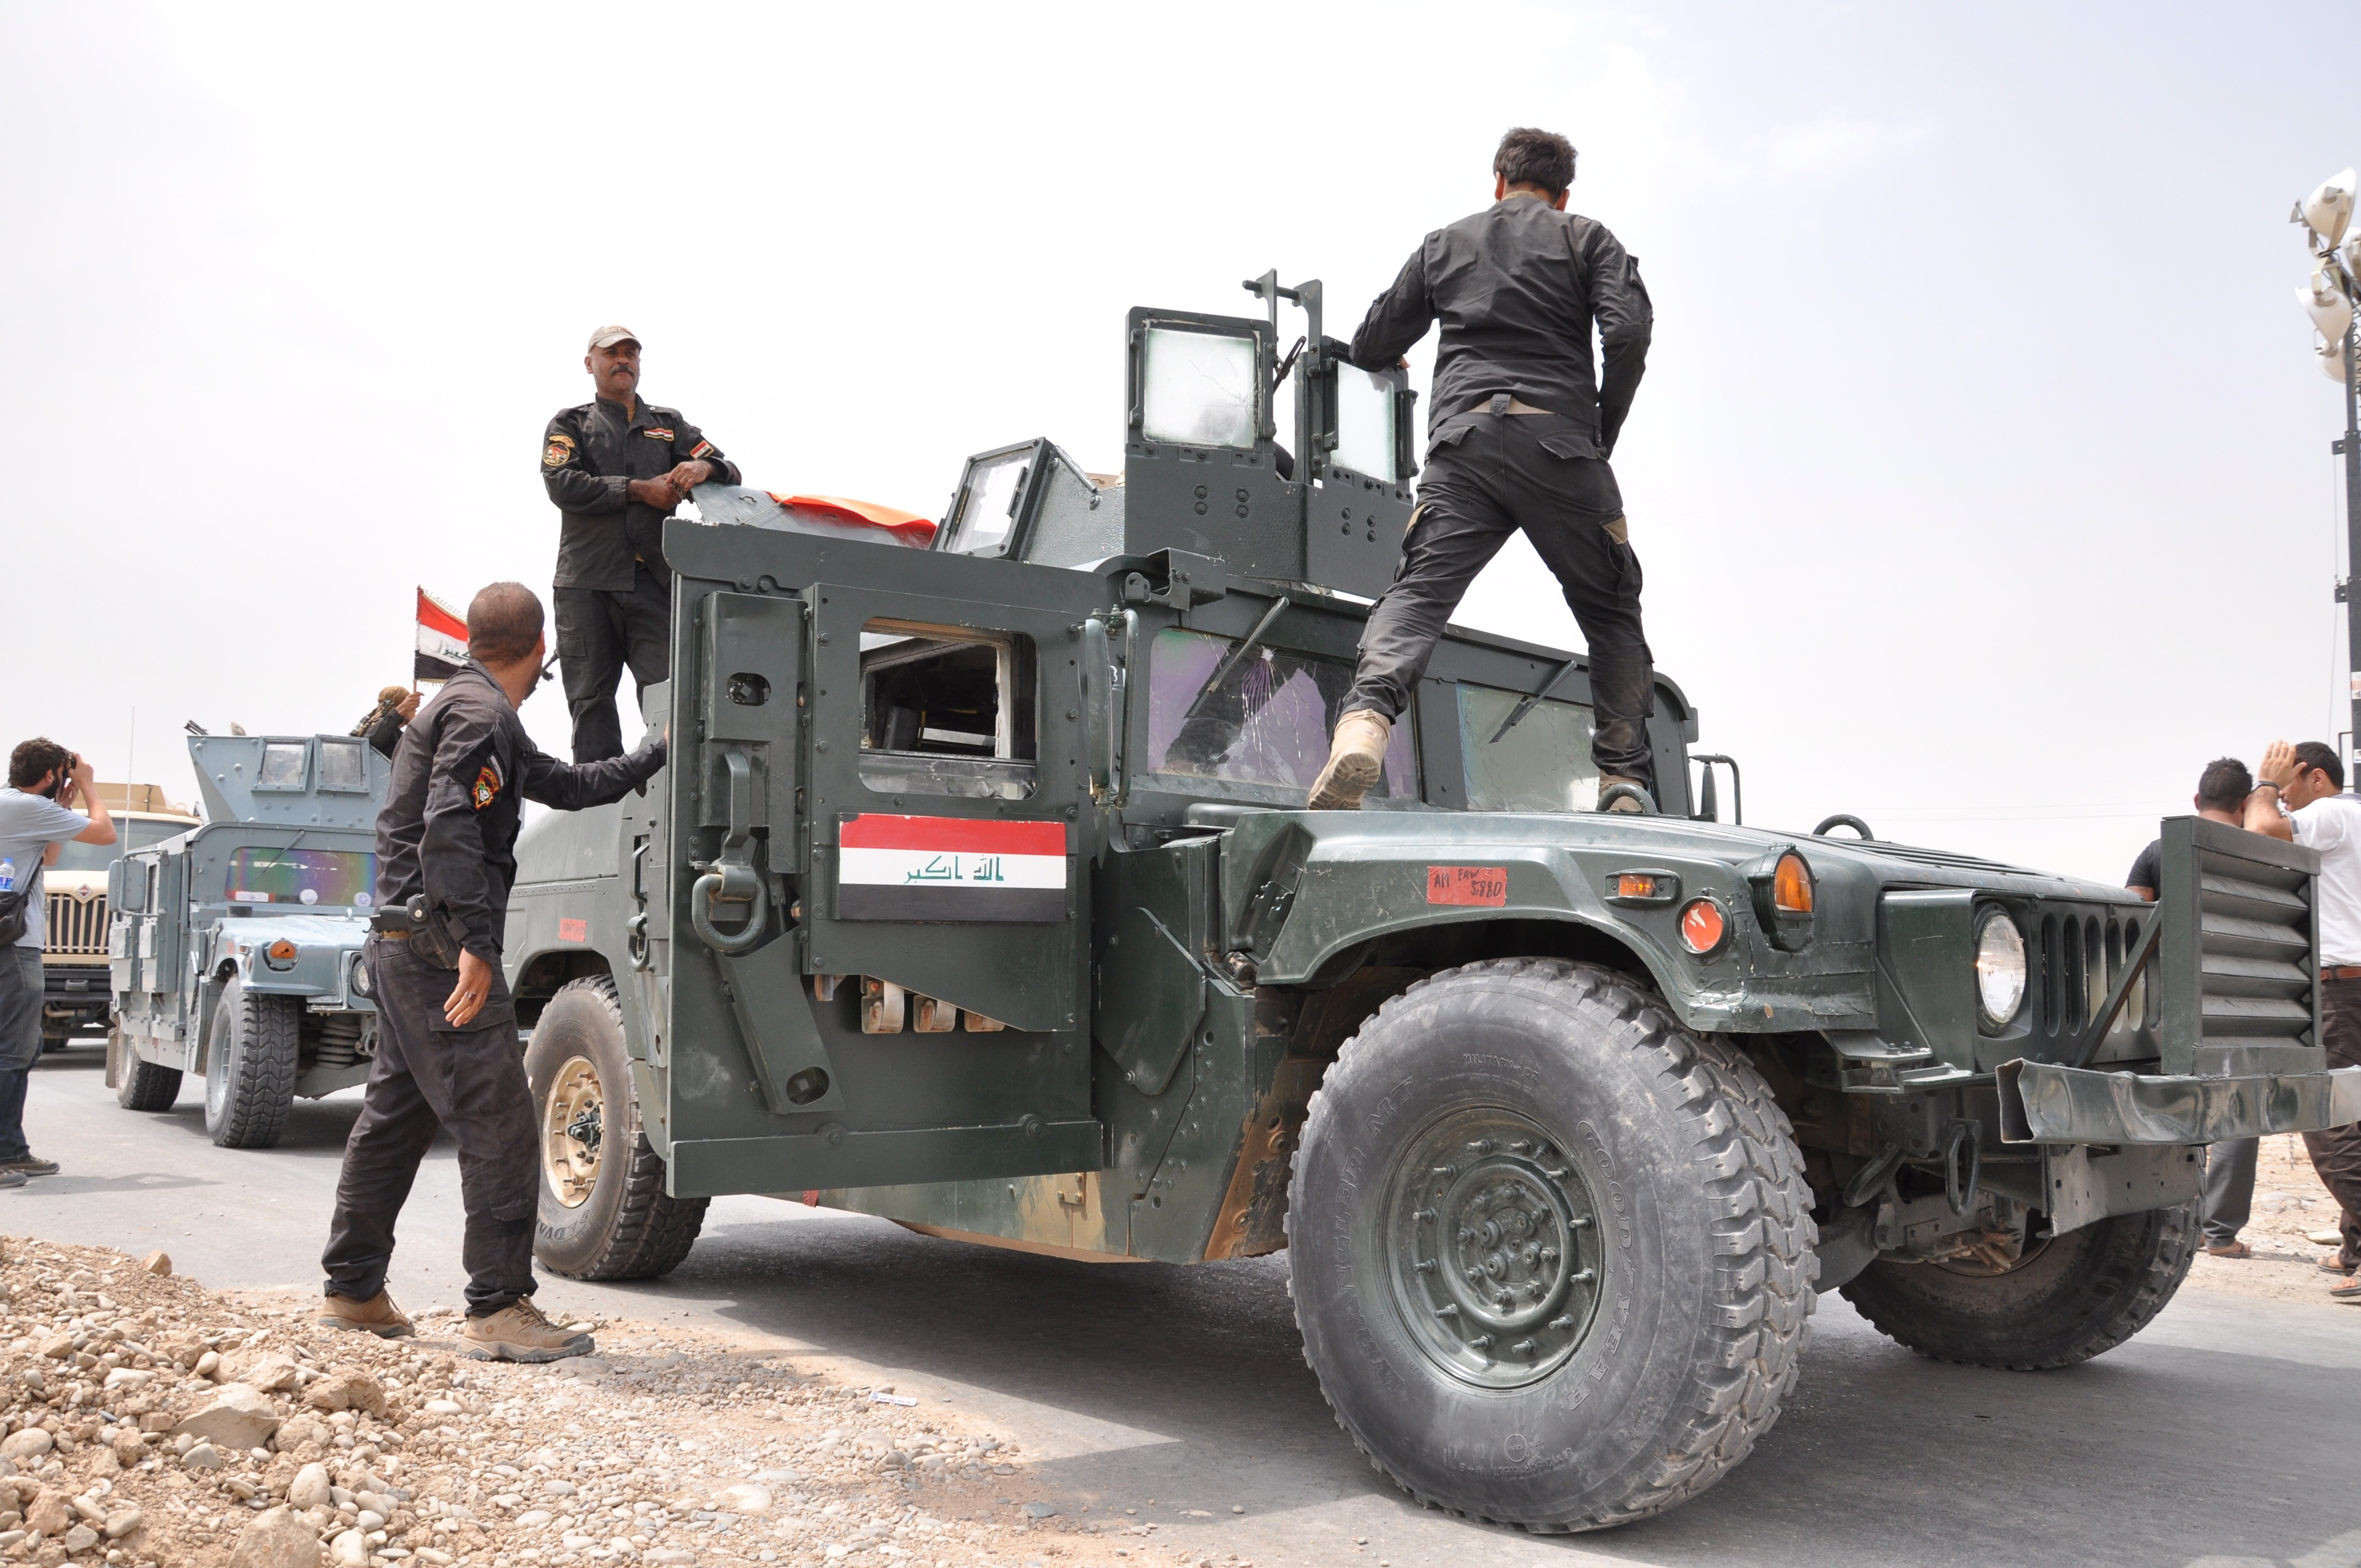 Iraqi army and Peshmerga forces take security precautions against possible ISIS-led attacks around the Mosul Dam on August 19, 2014 in Mosul, Iraq.